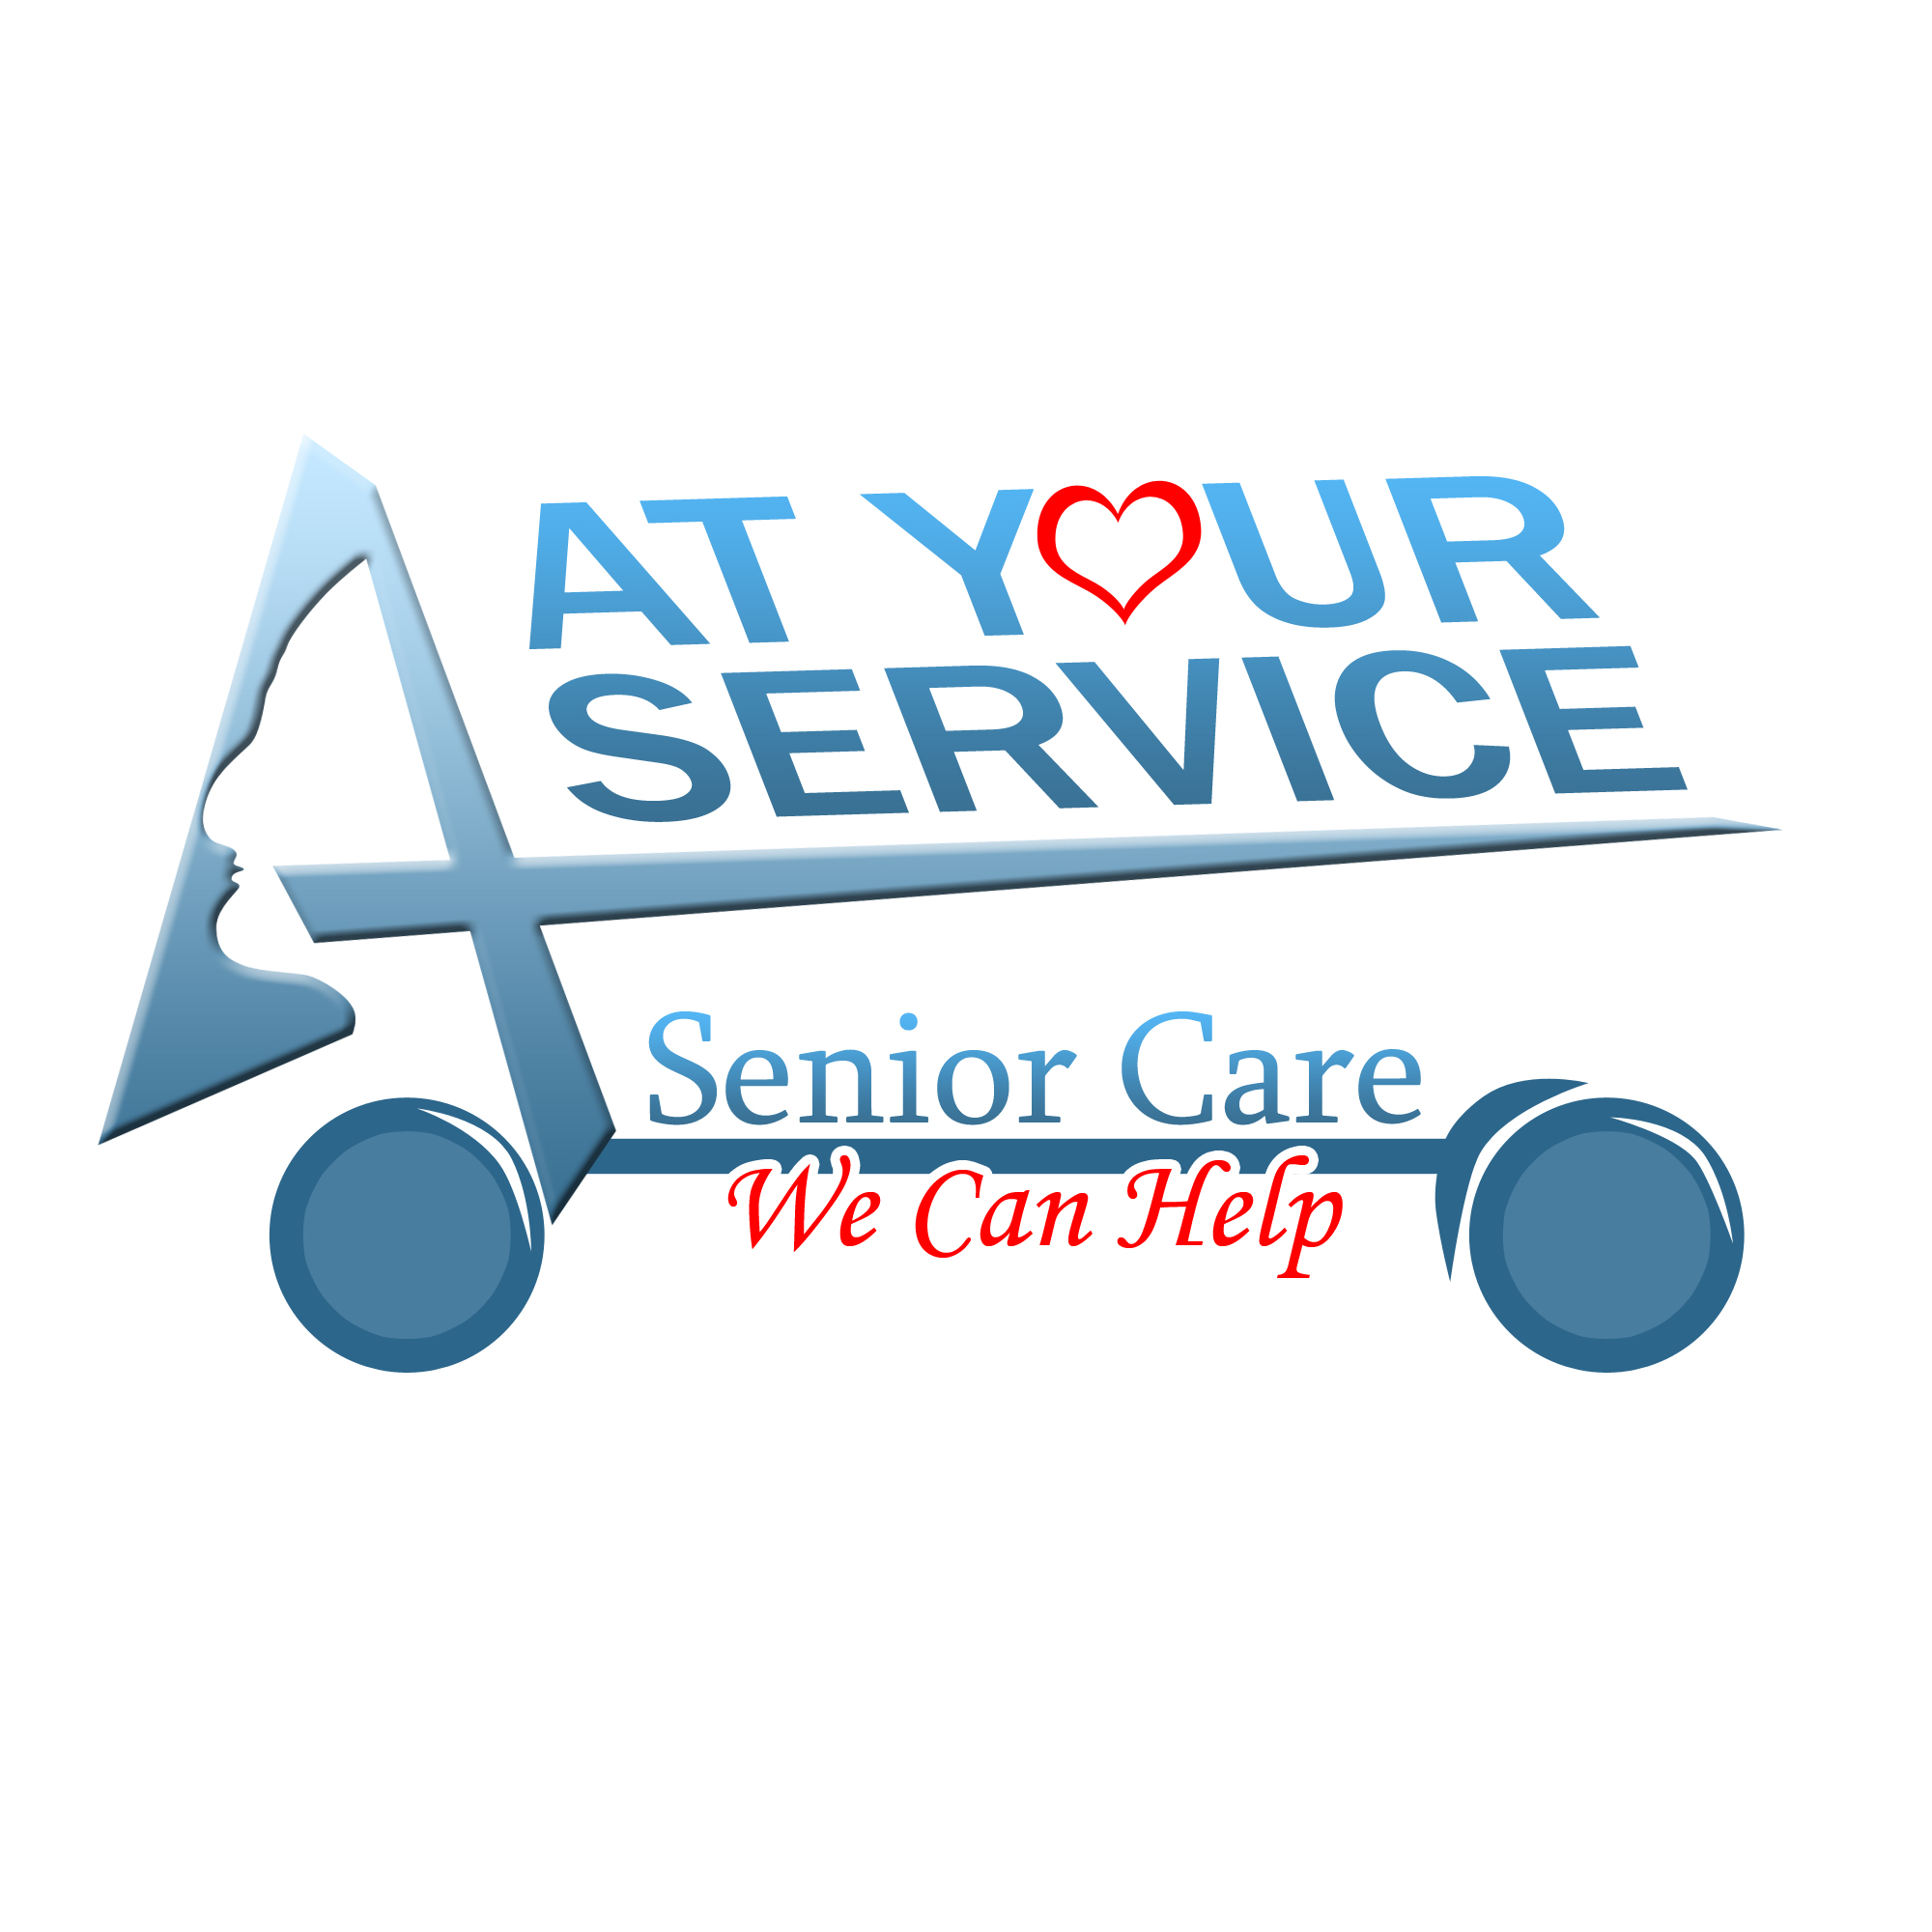 Logo Design by Ervin Beñez - Entry No. 35 in the Logo Design Contest Care To Go Services.